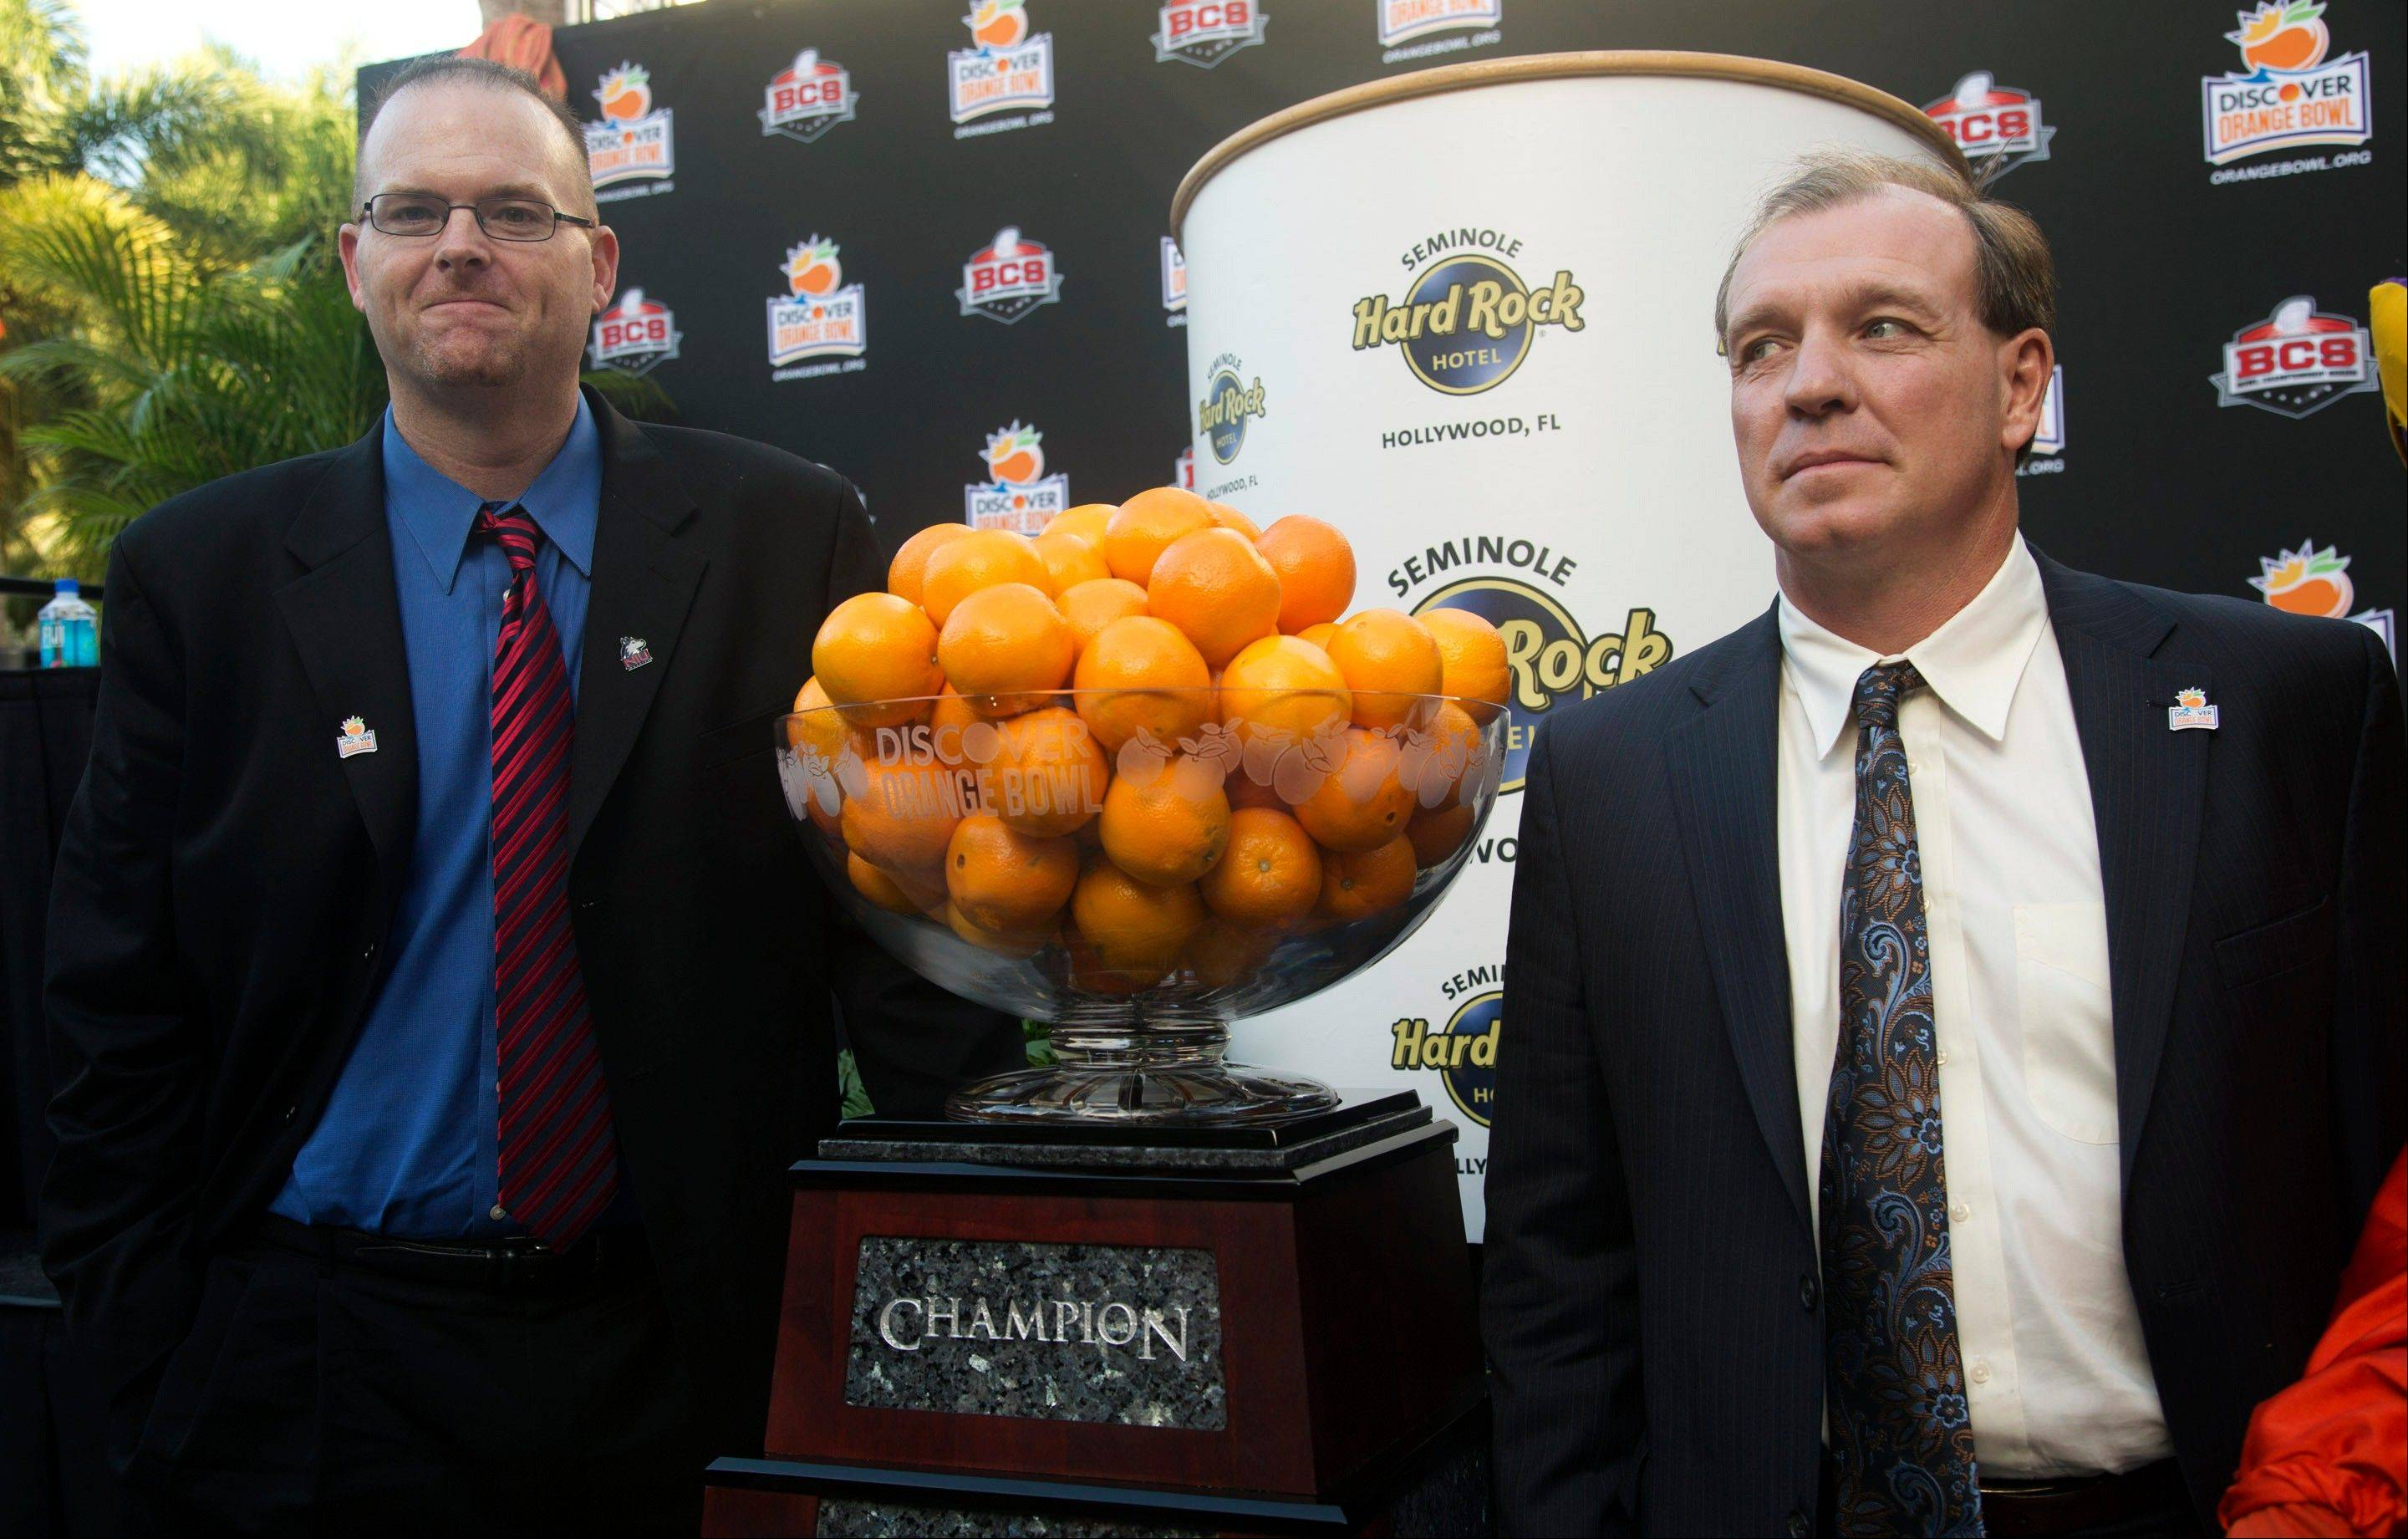 Northern Illinois head coach Rod Carey, left, and Florida State head coach Jimbo Fisher pose for photos Wednesday after a news conference promoting the Orange Bowl in Hollywood, Fla. Carey, who served as offensive coordinator the past 12 games and has been the line coach for two years, will make his head coaching debut. He replaces Dave Doeren, who took the North Carolina State job.